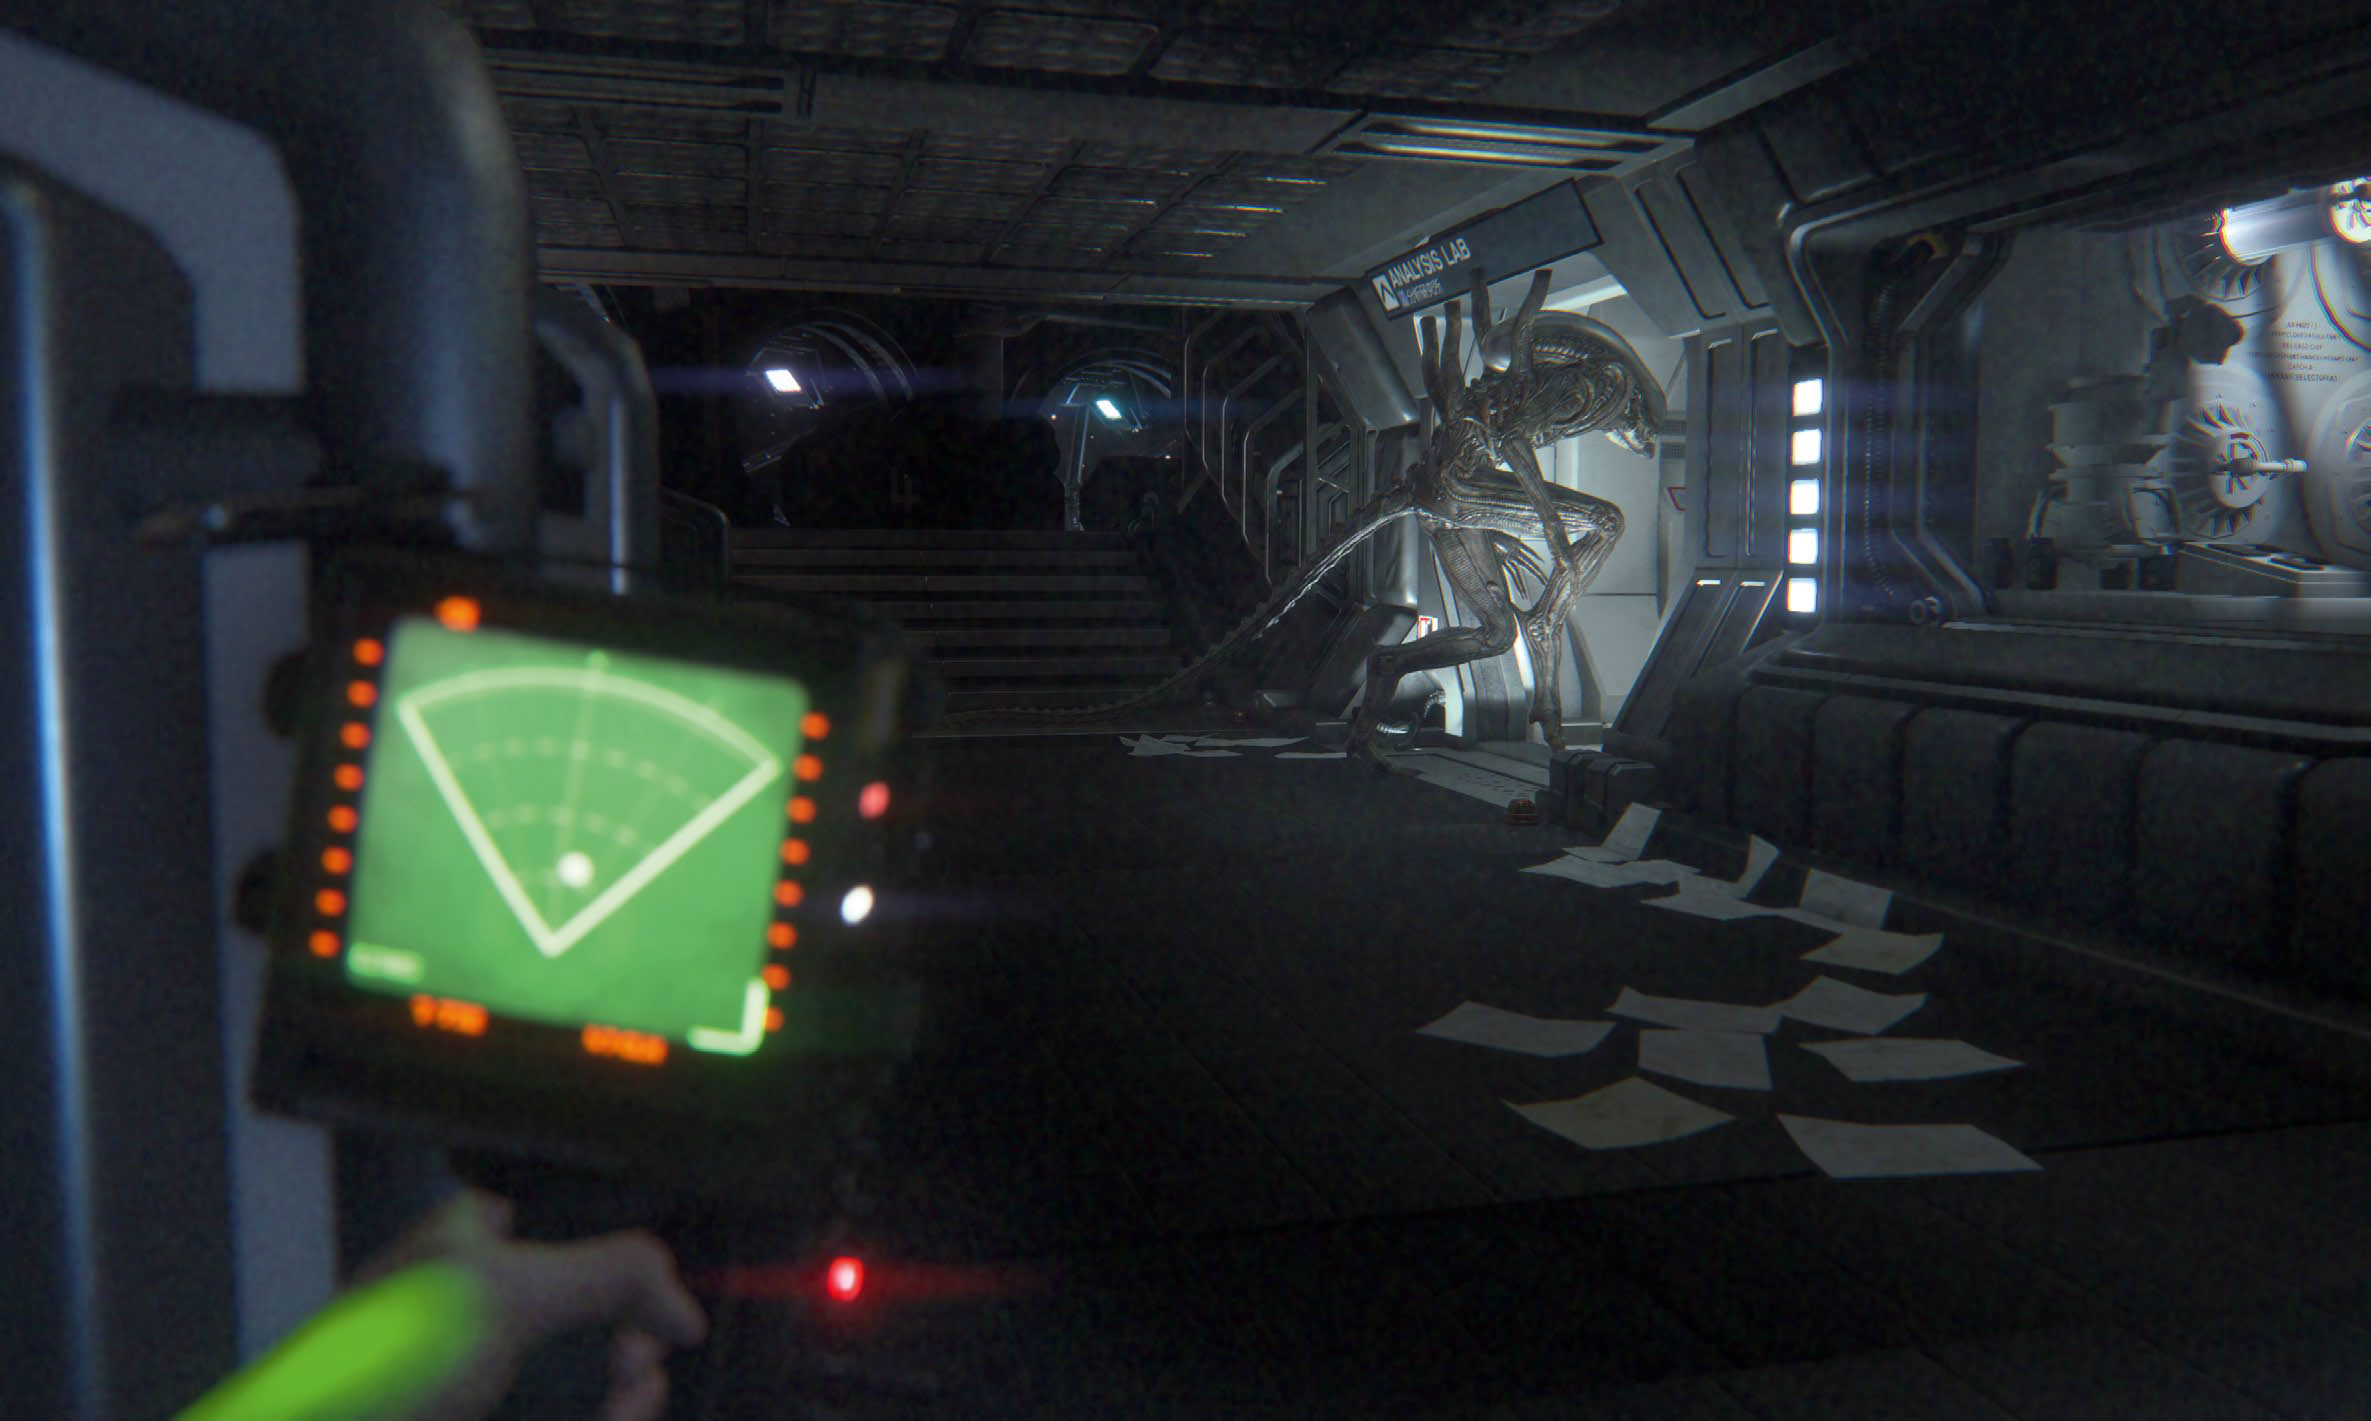 http://assets.vg247.com/current//2014/08/alien-isolation.jpg